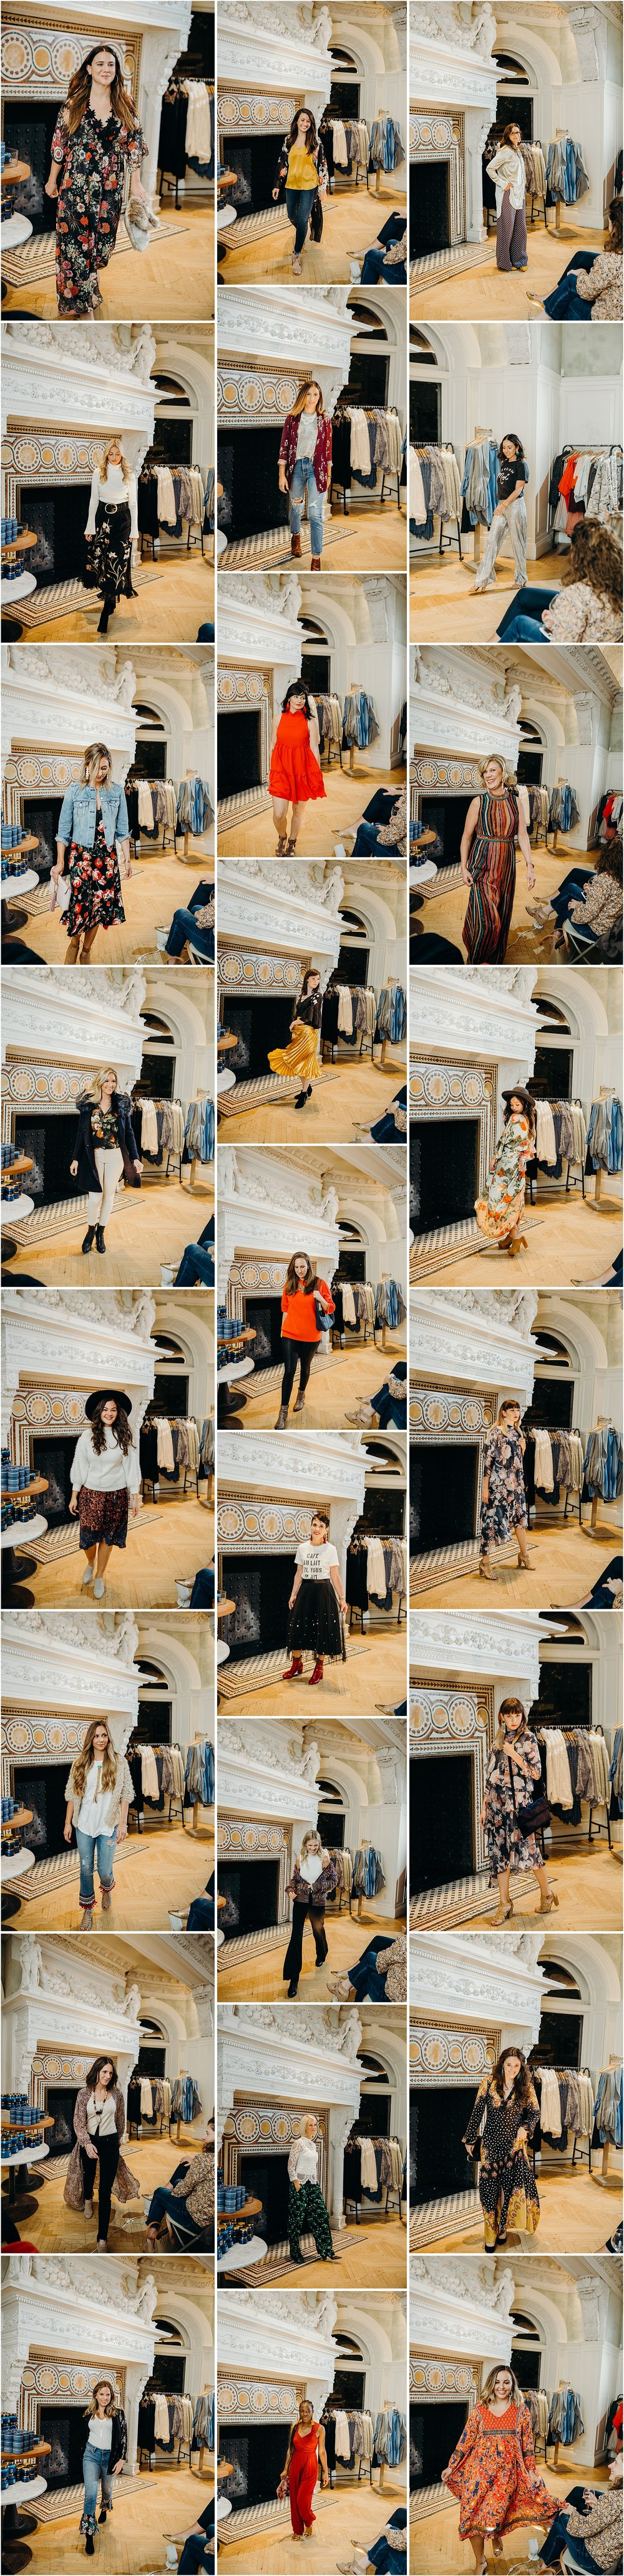 Joe_Mac_Creative_Philadelphia_Photograhy_Anthropologie_Fall_Fashion_0011.jpg